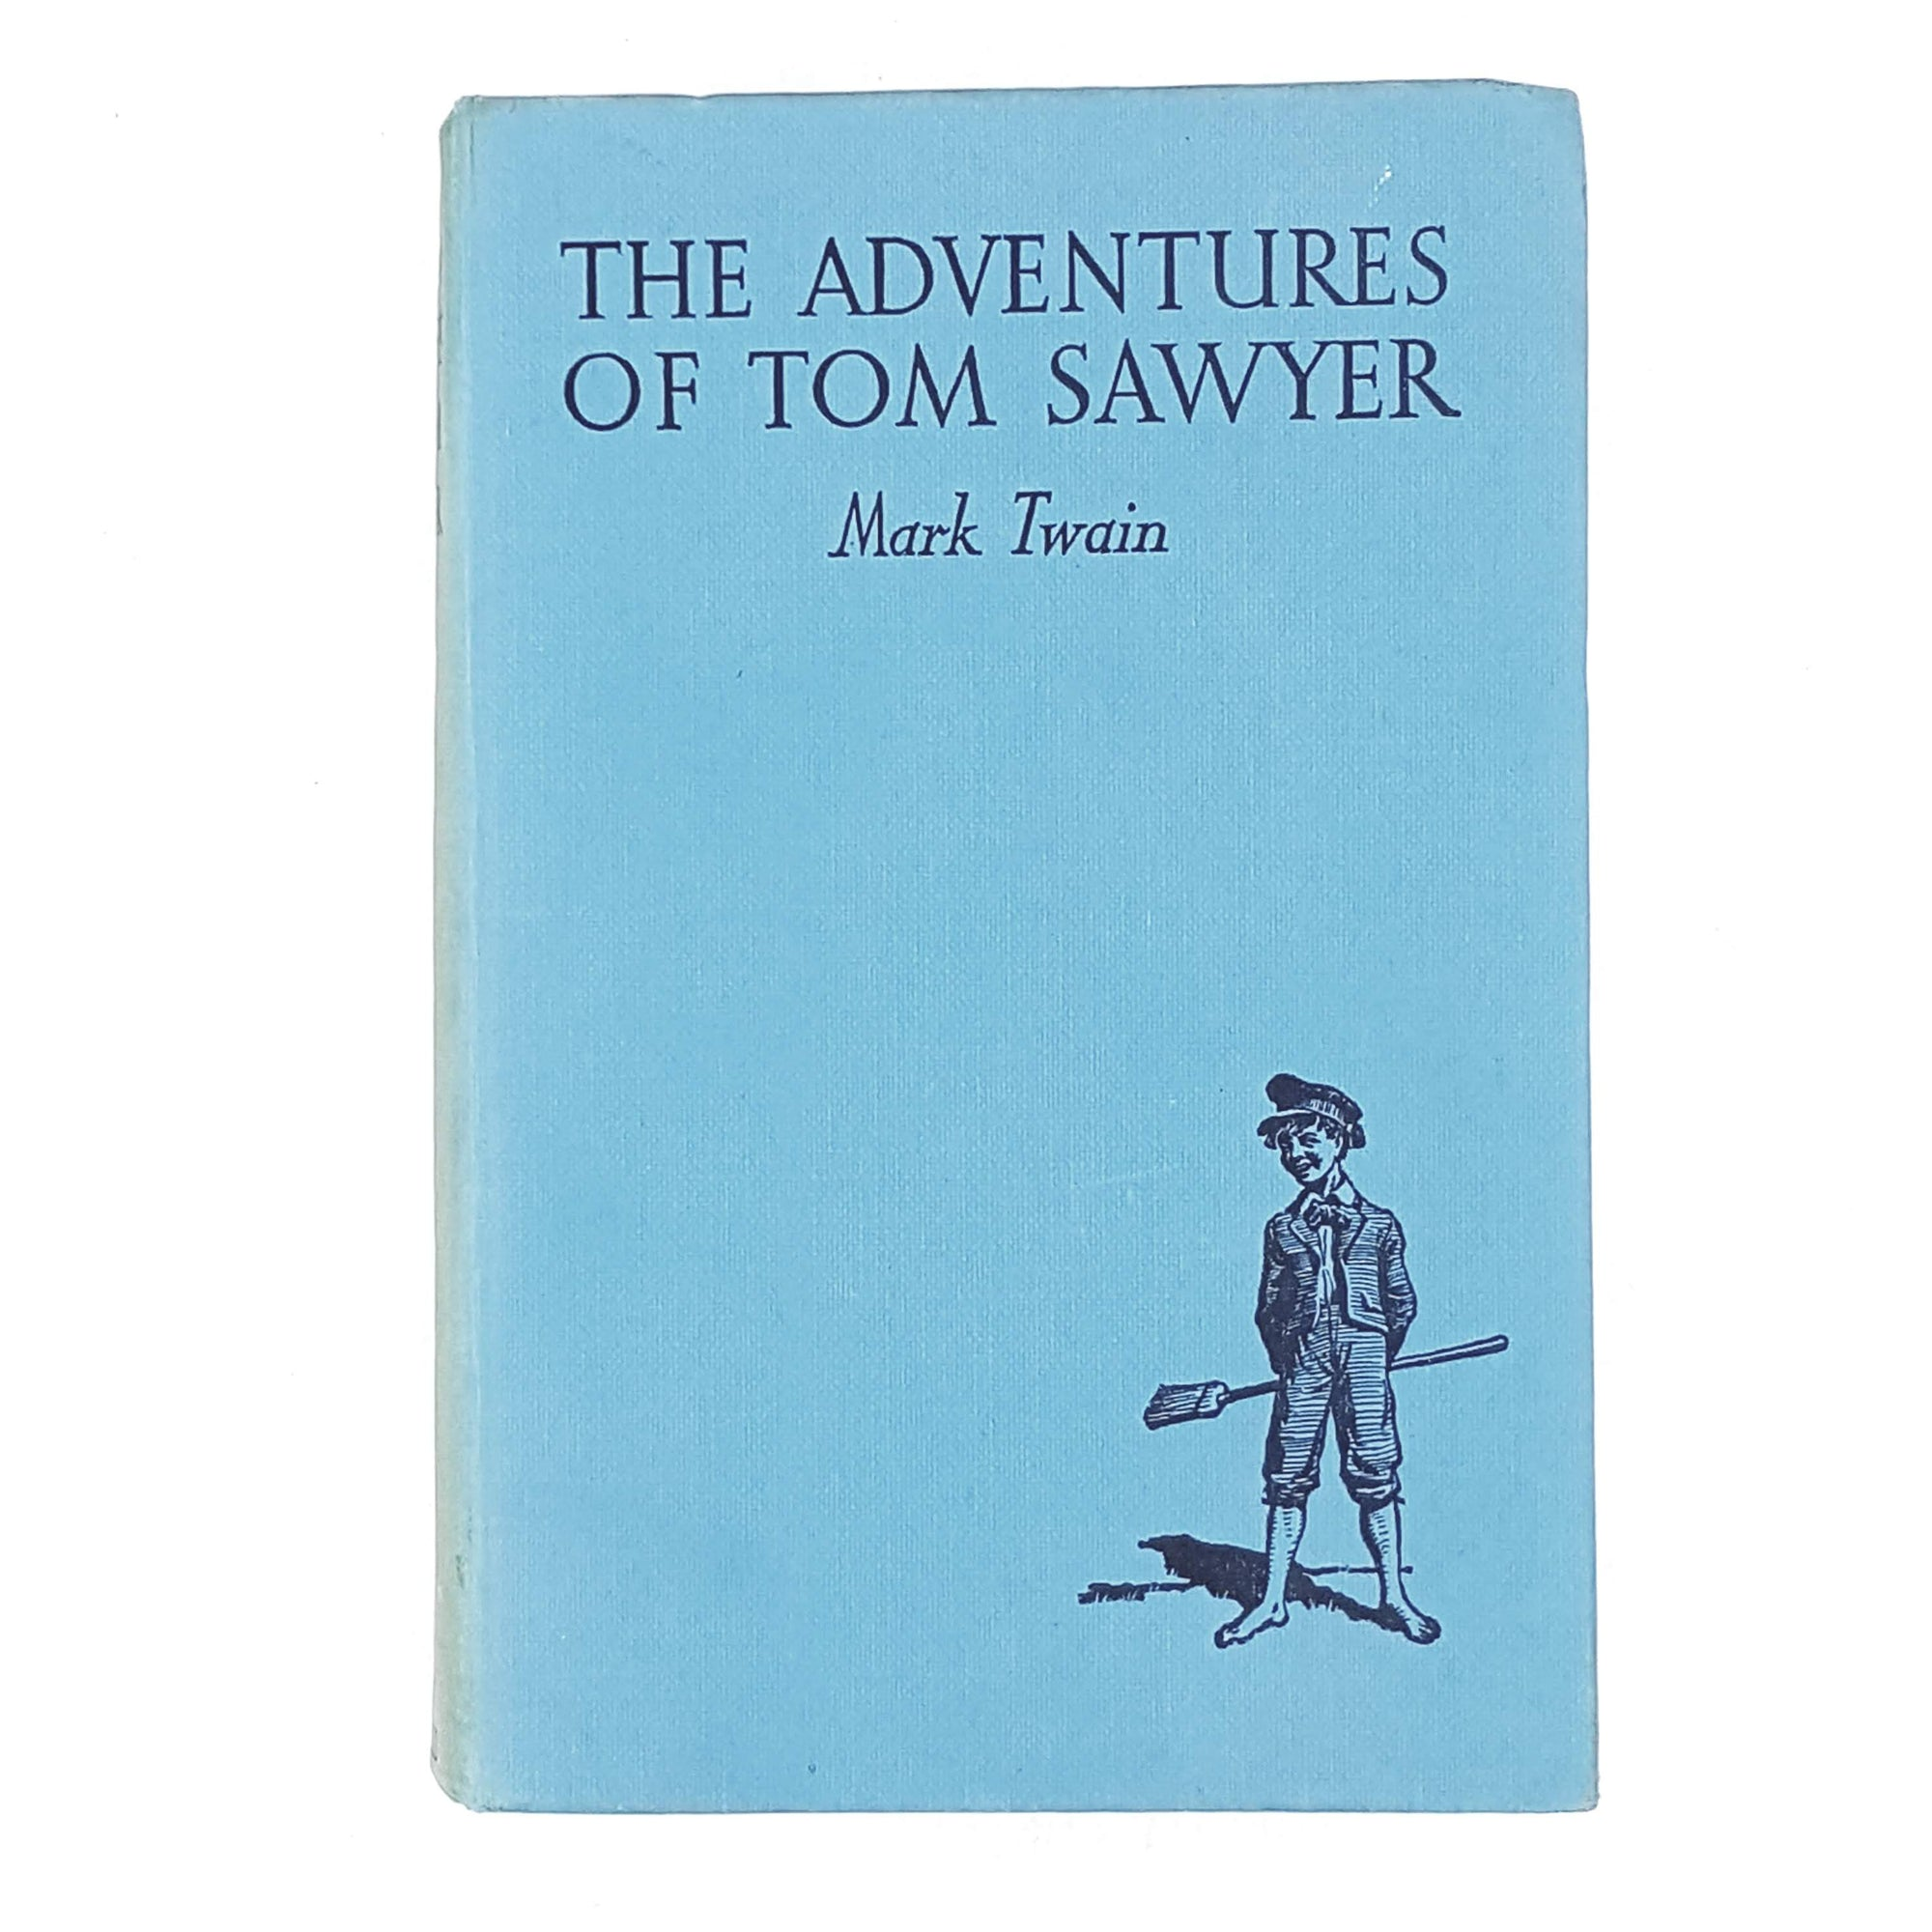 Mark Twain's The Adventures of Tom Sawyer sky blue